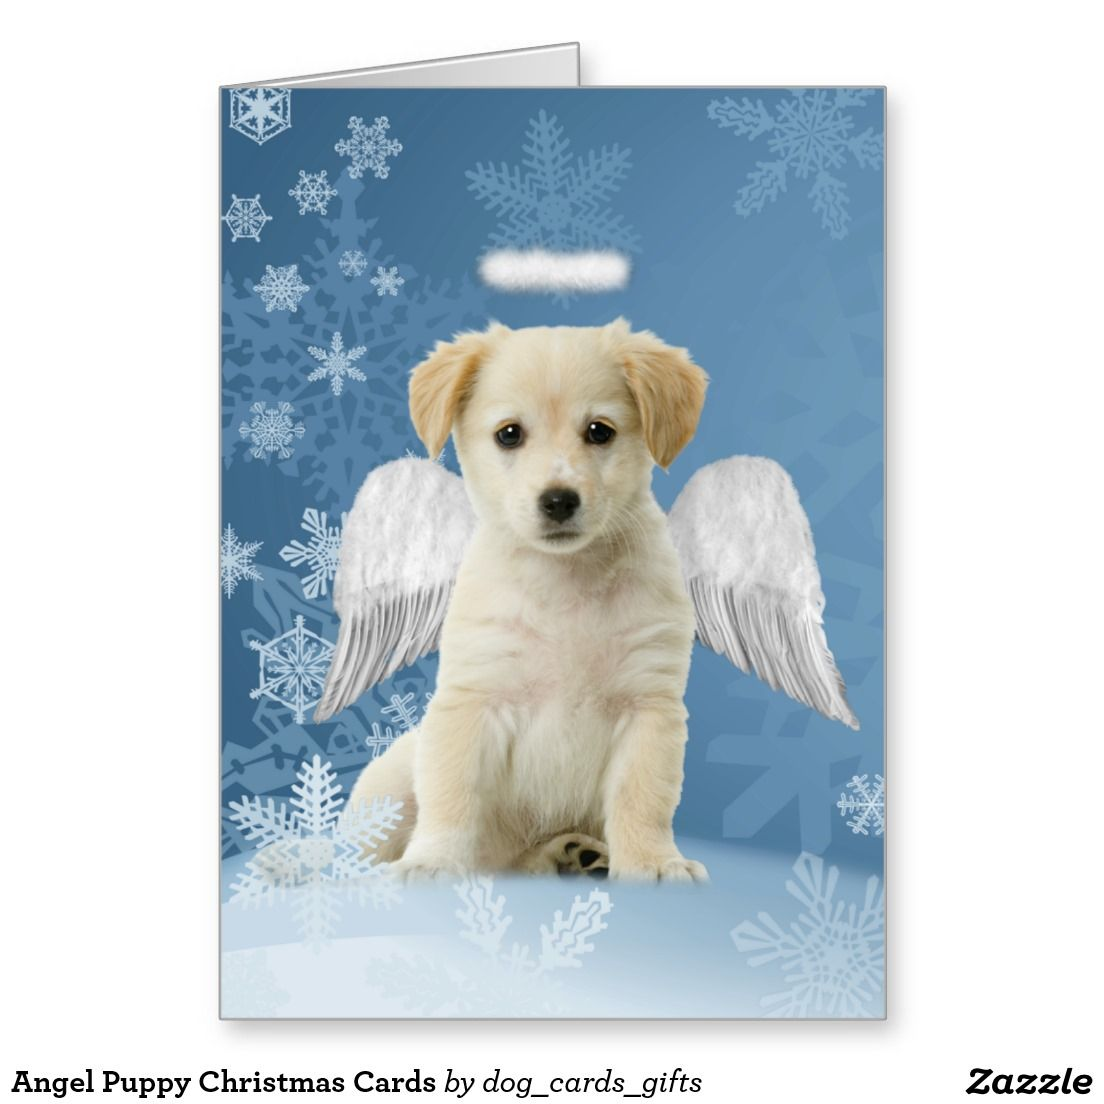 Angel Puppy Christmas Cards | Puppy and Kitty Christmas Cards ...